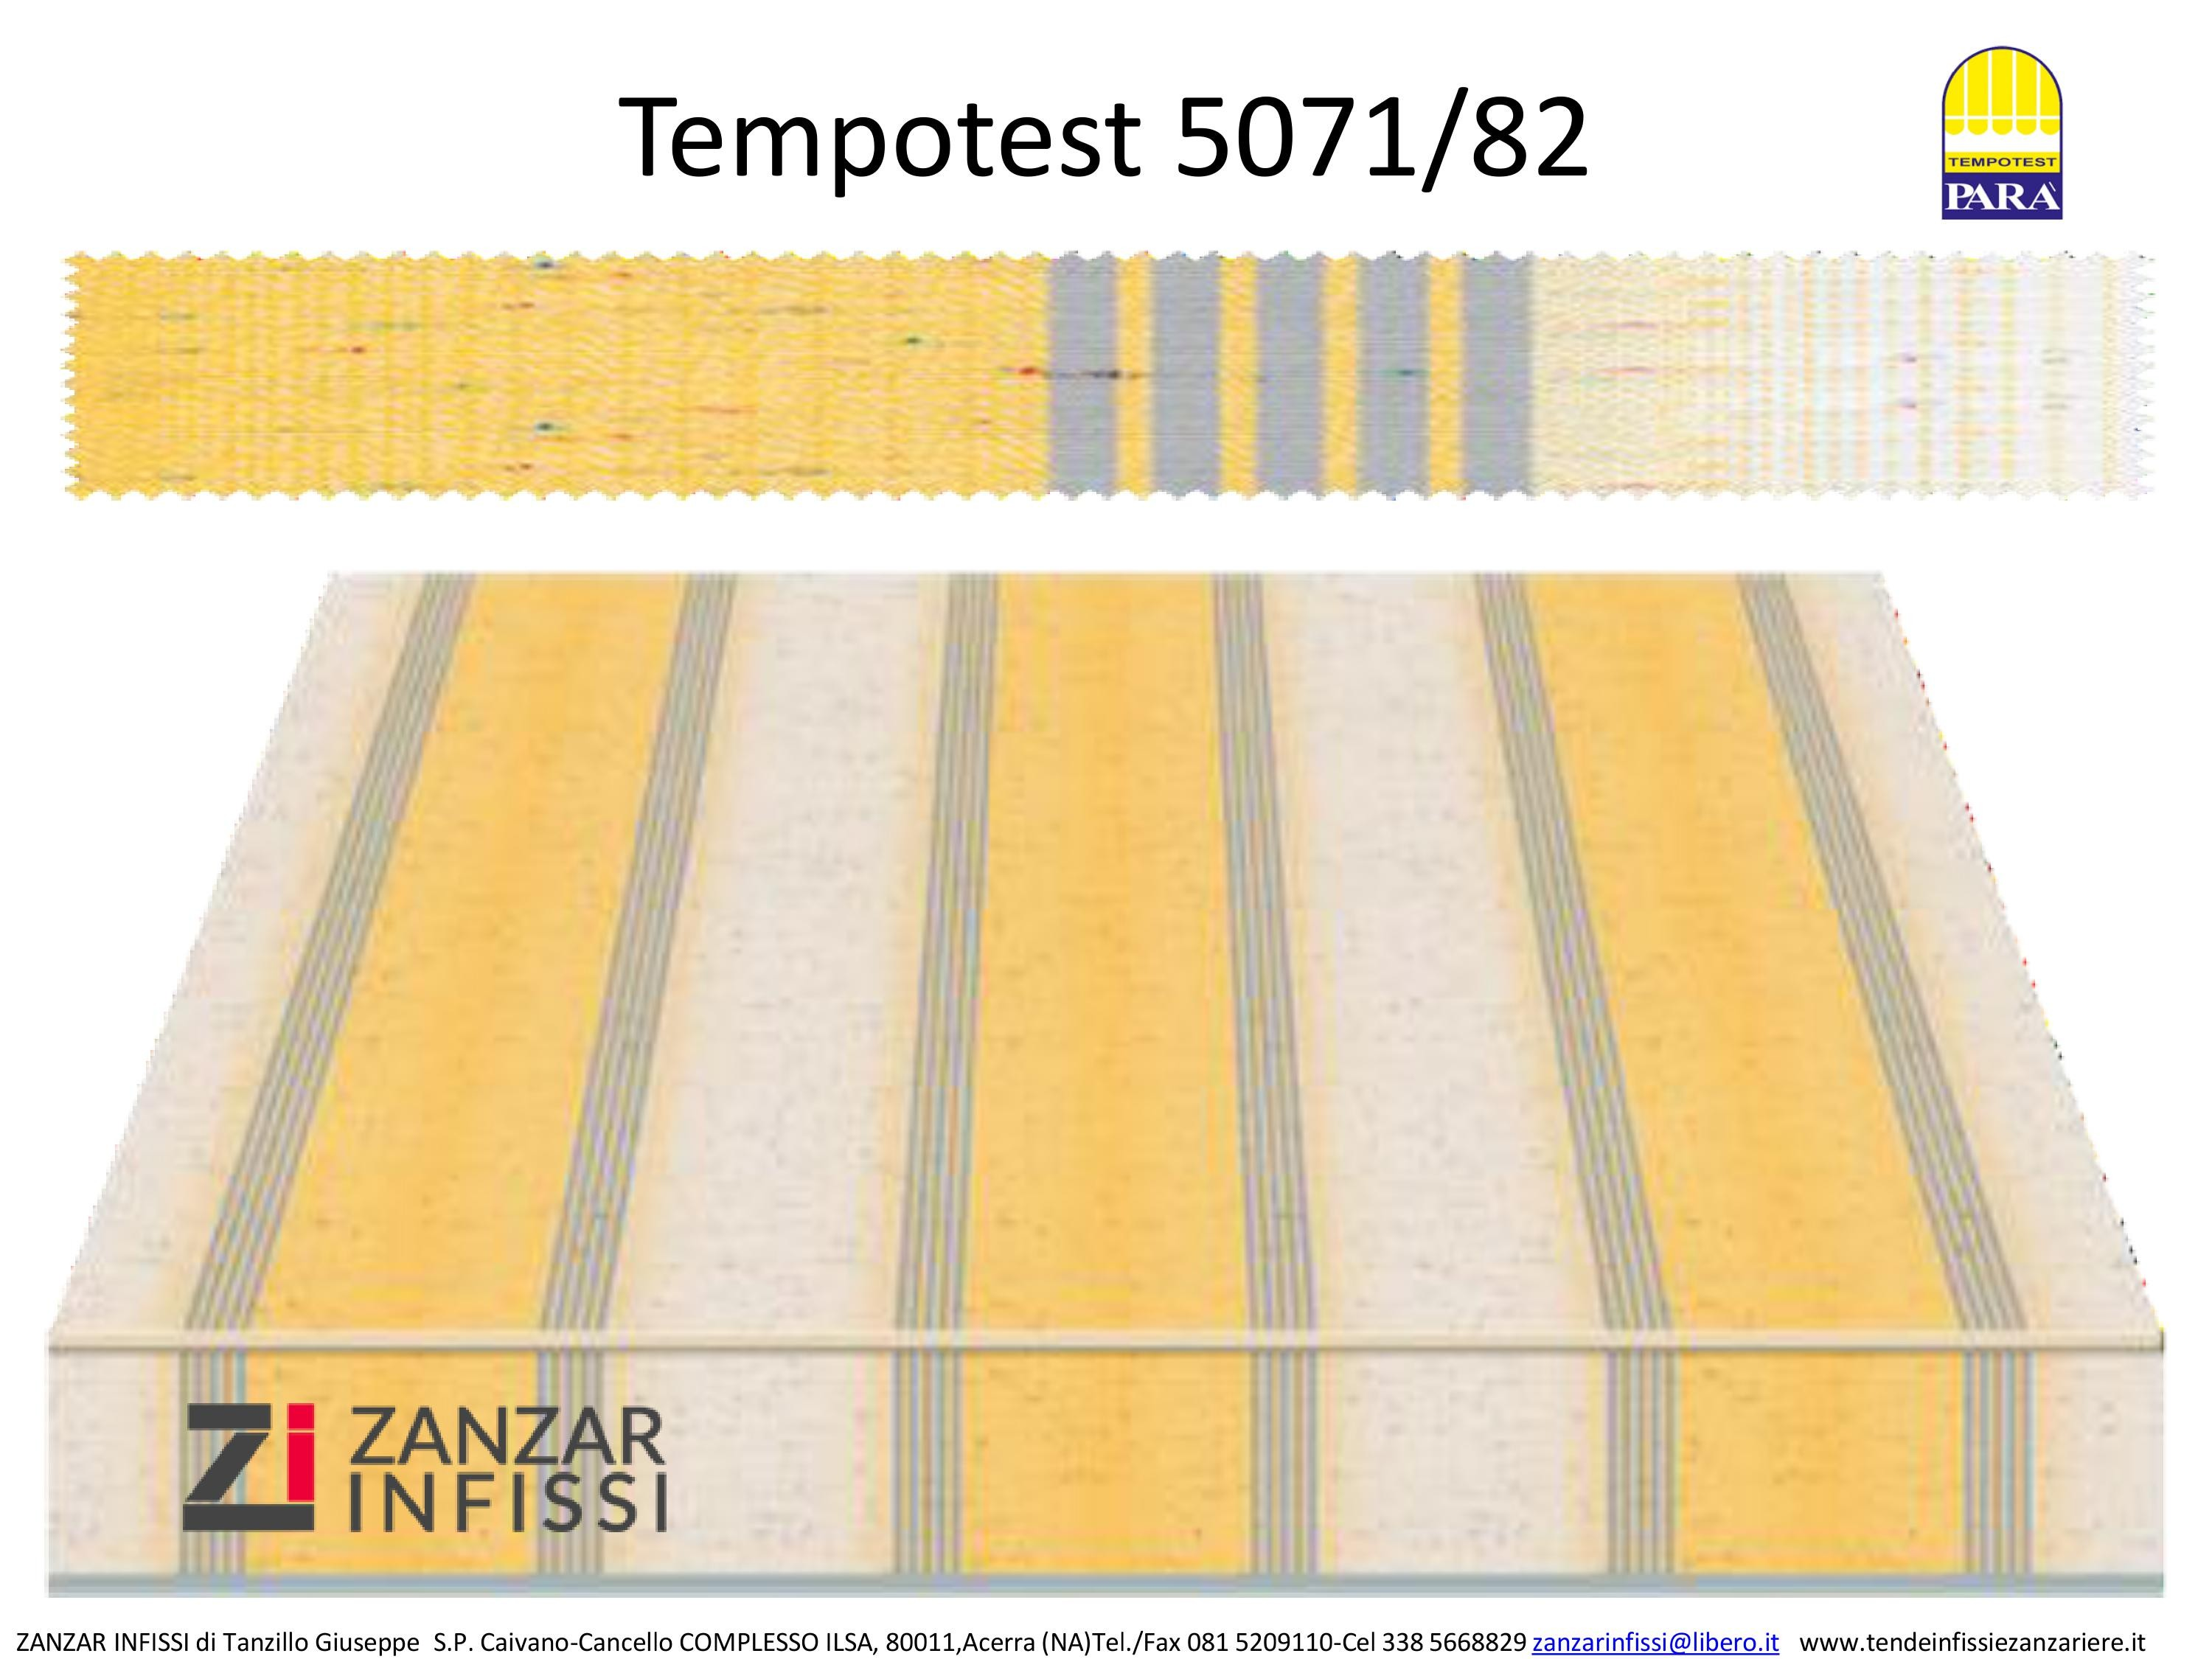 Tempotest 5071/82